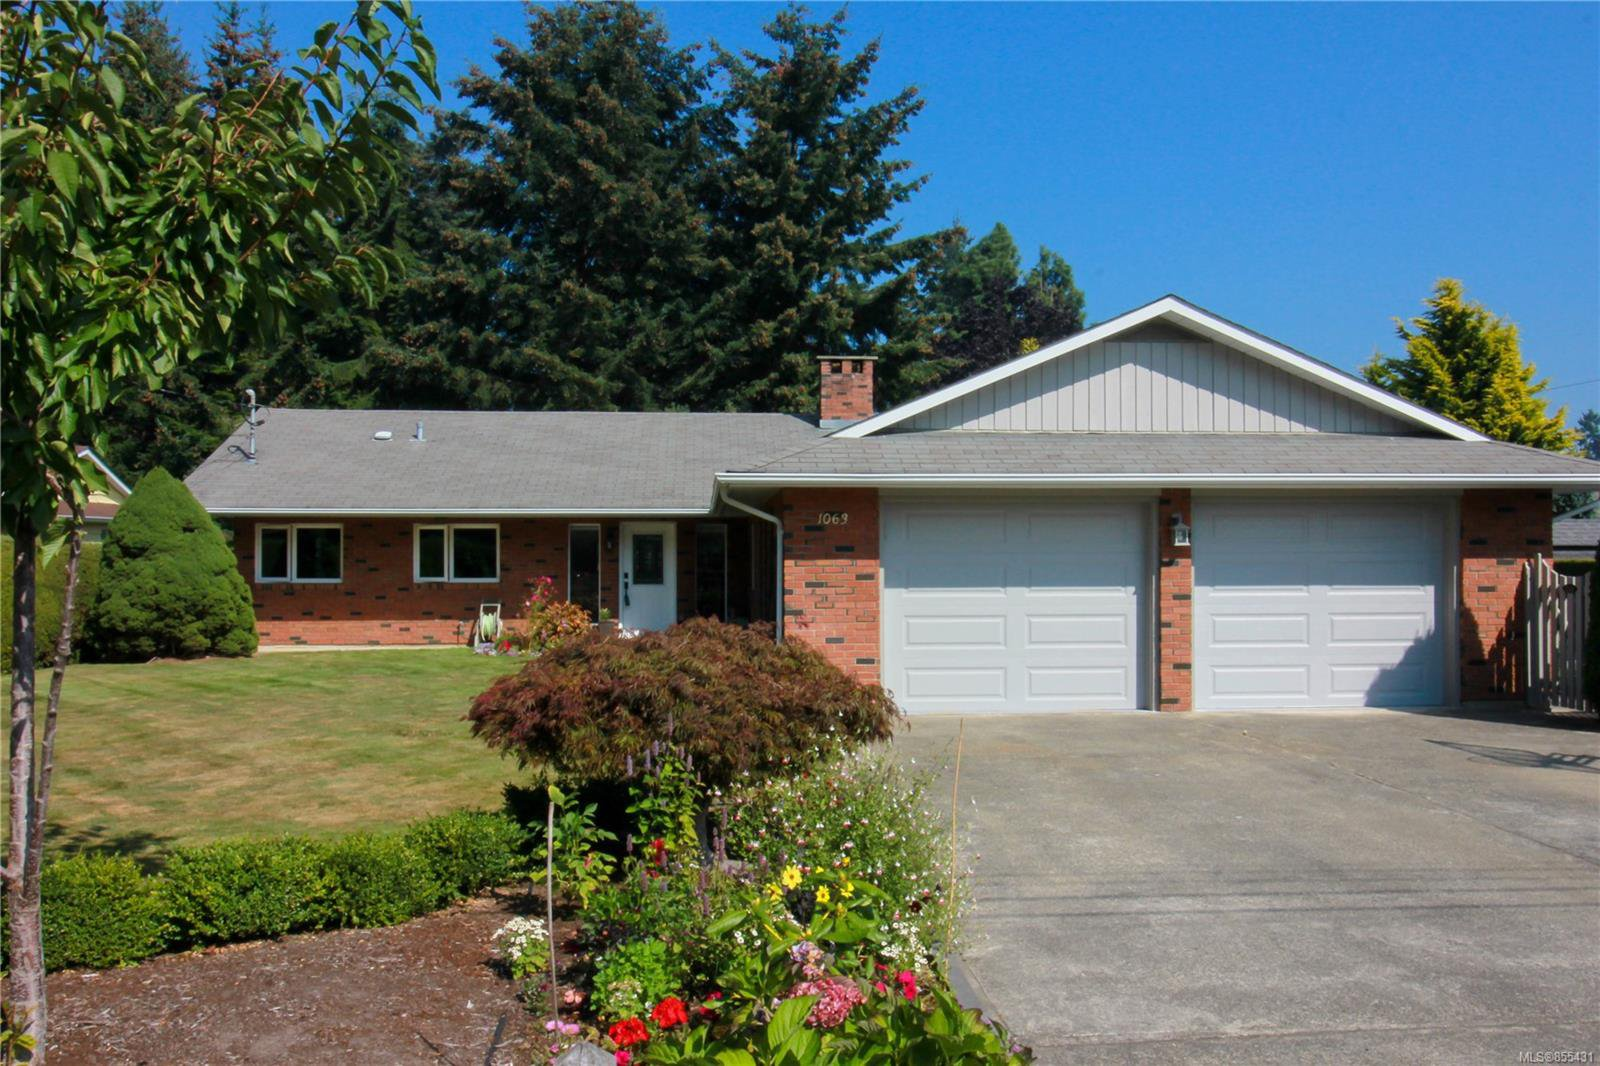 Main Photo: 1063 Widgeon Pl in : PQ Qualicum Beach Single Family Detached for sale (Parksville/Qualicum)  : MLS®# 855431